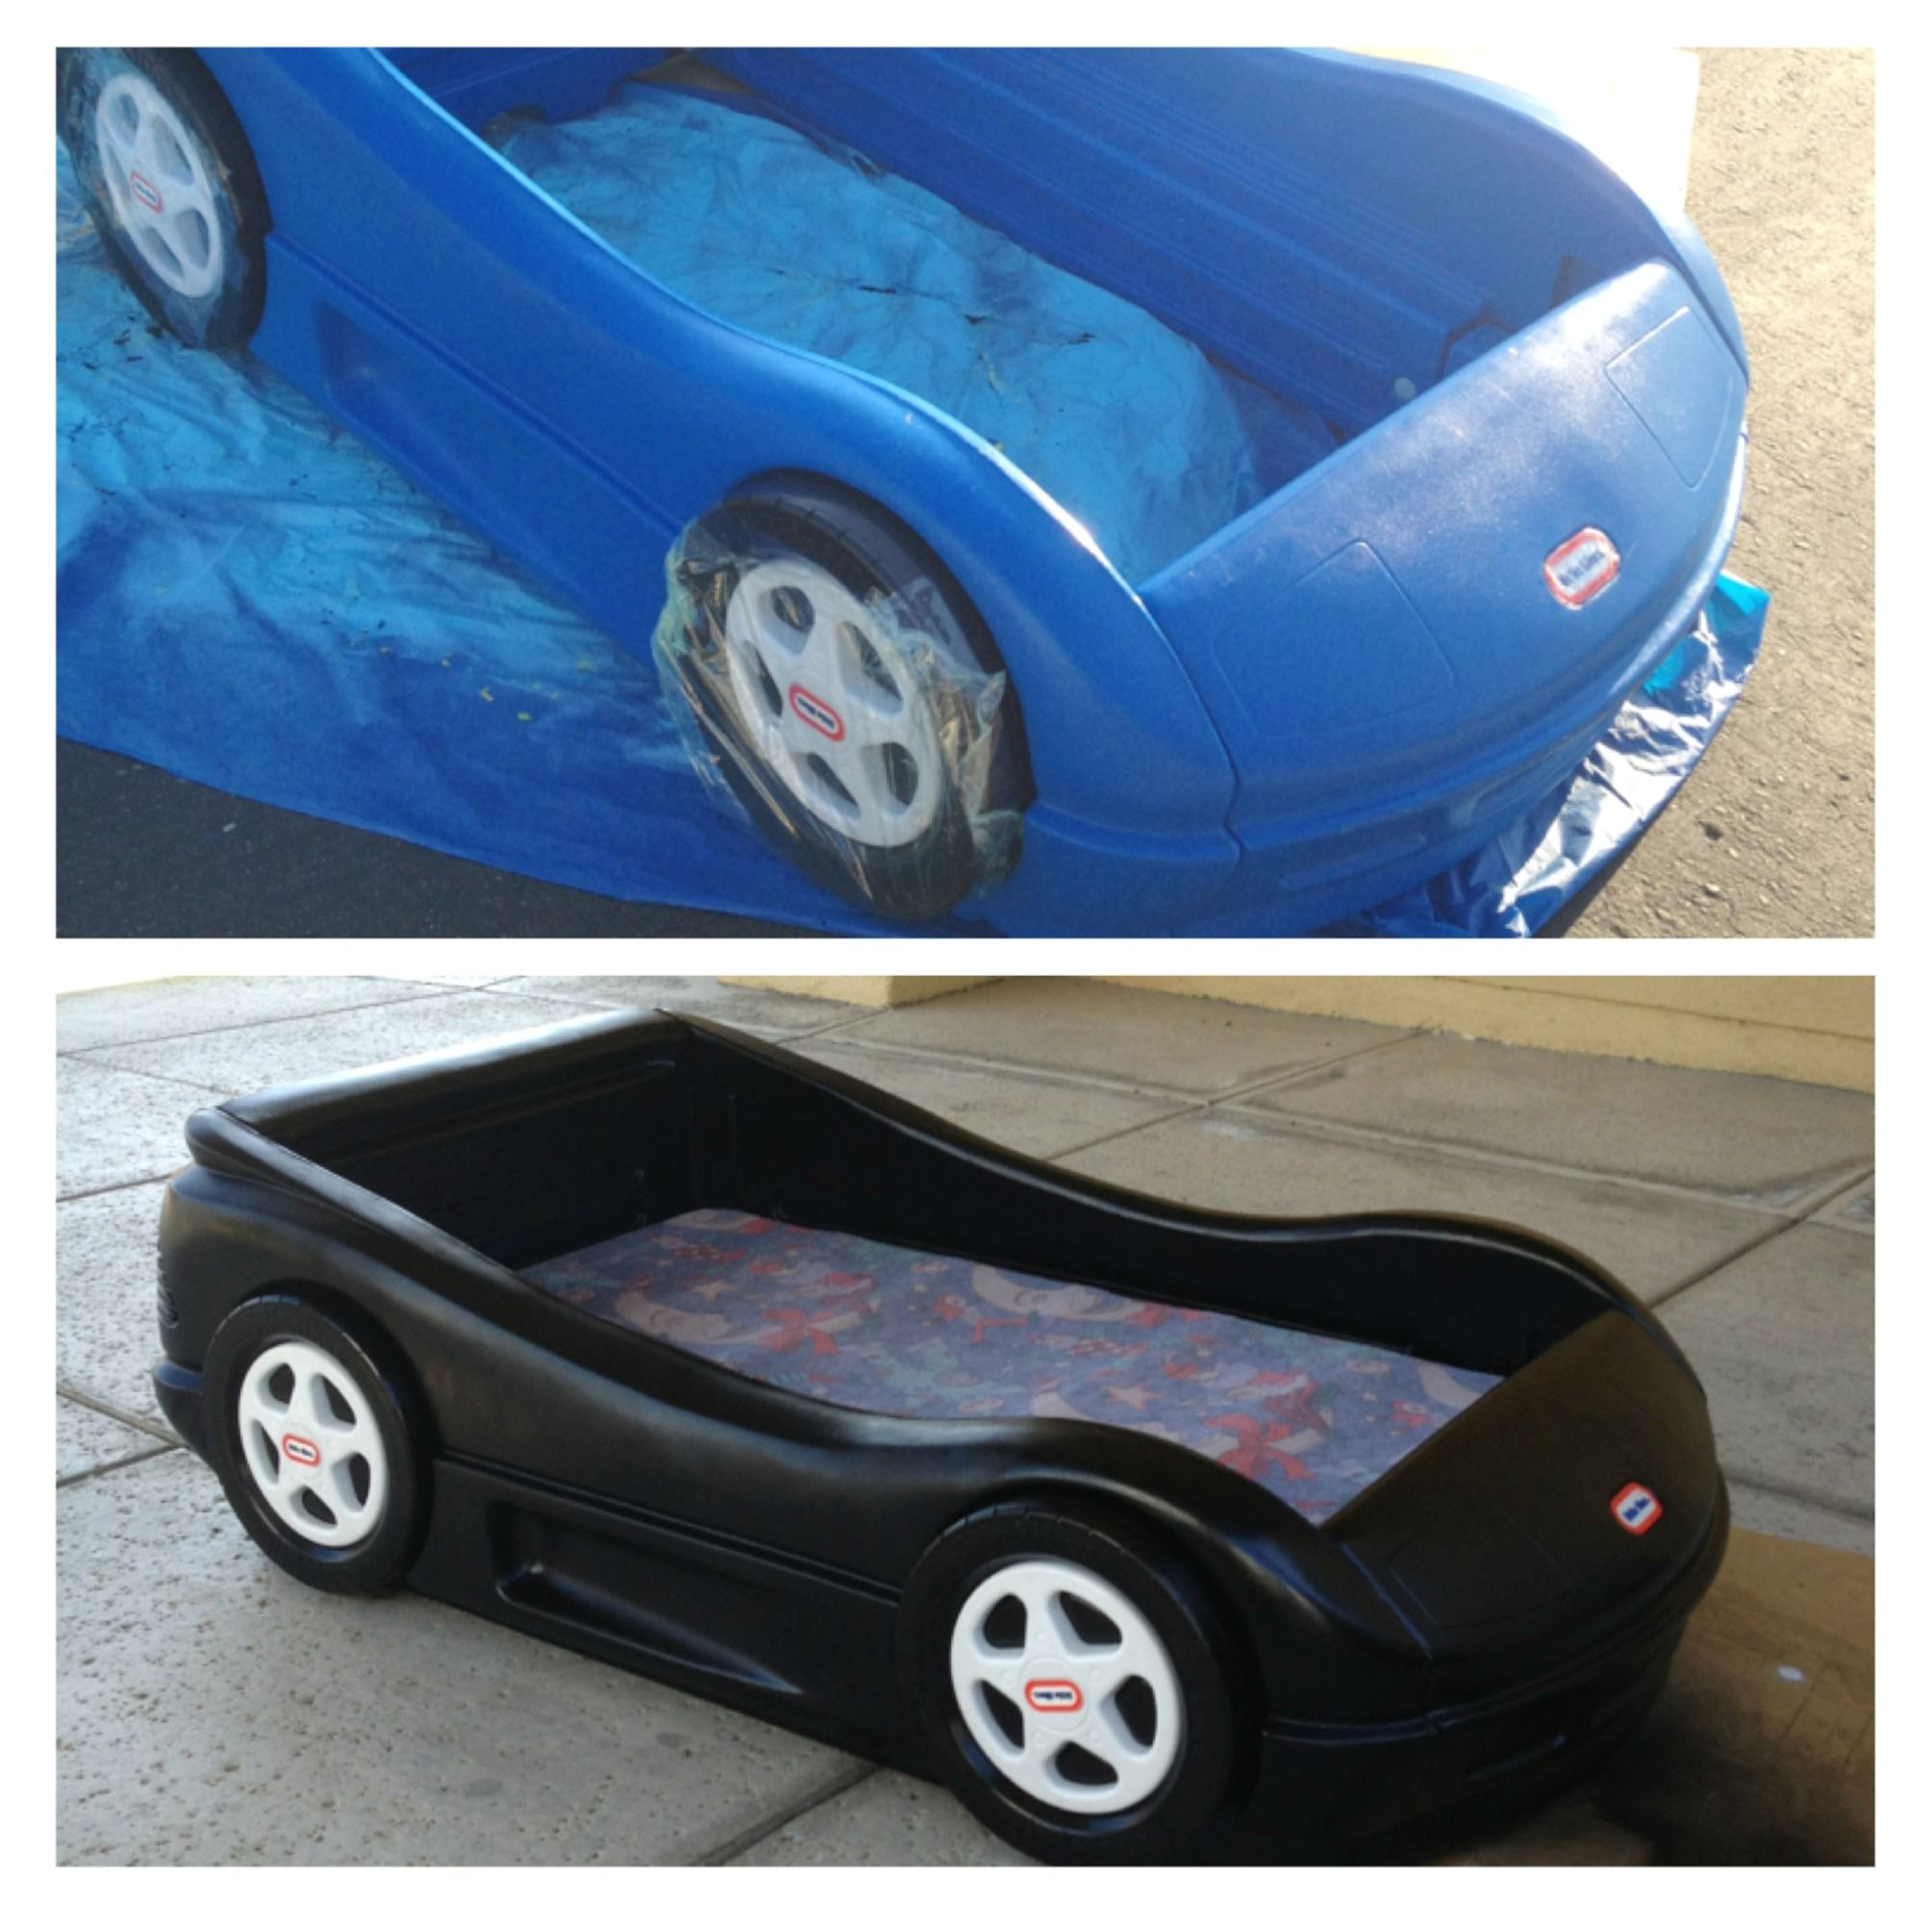 Little Tikes Race Car Bed Will Be The Coolest Bed In The Neighborhood Race Car Beds From A Name You Can Trust Will Make Fe Car Bed Red Sports Car Twin